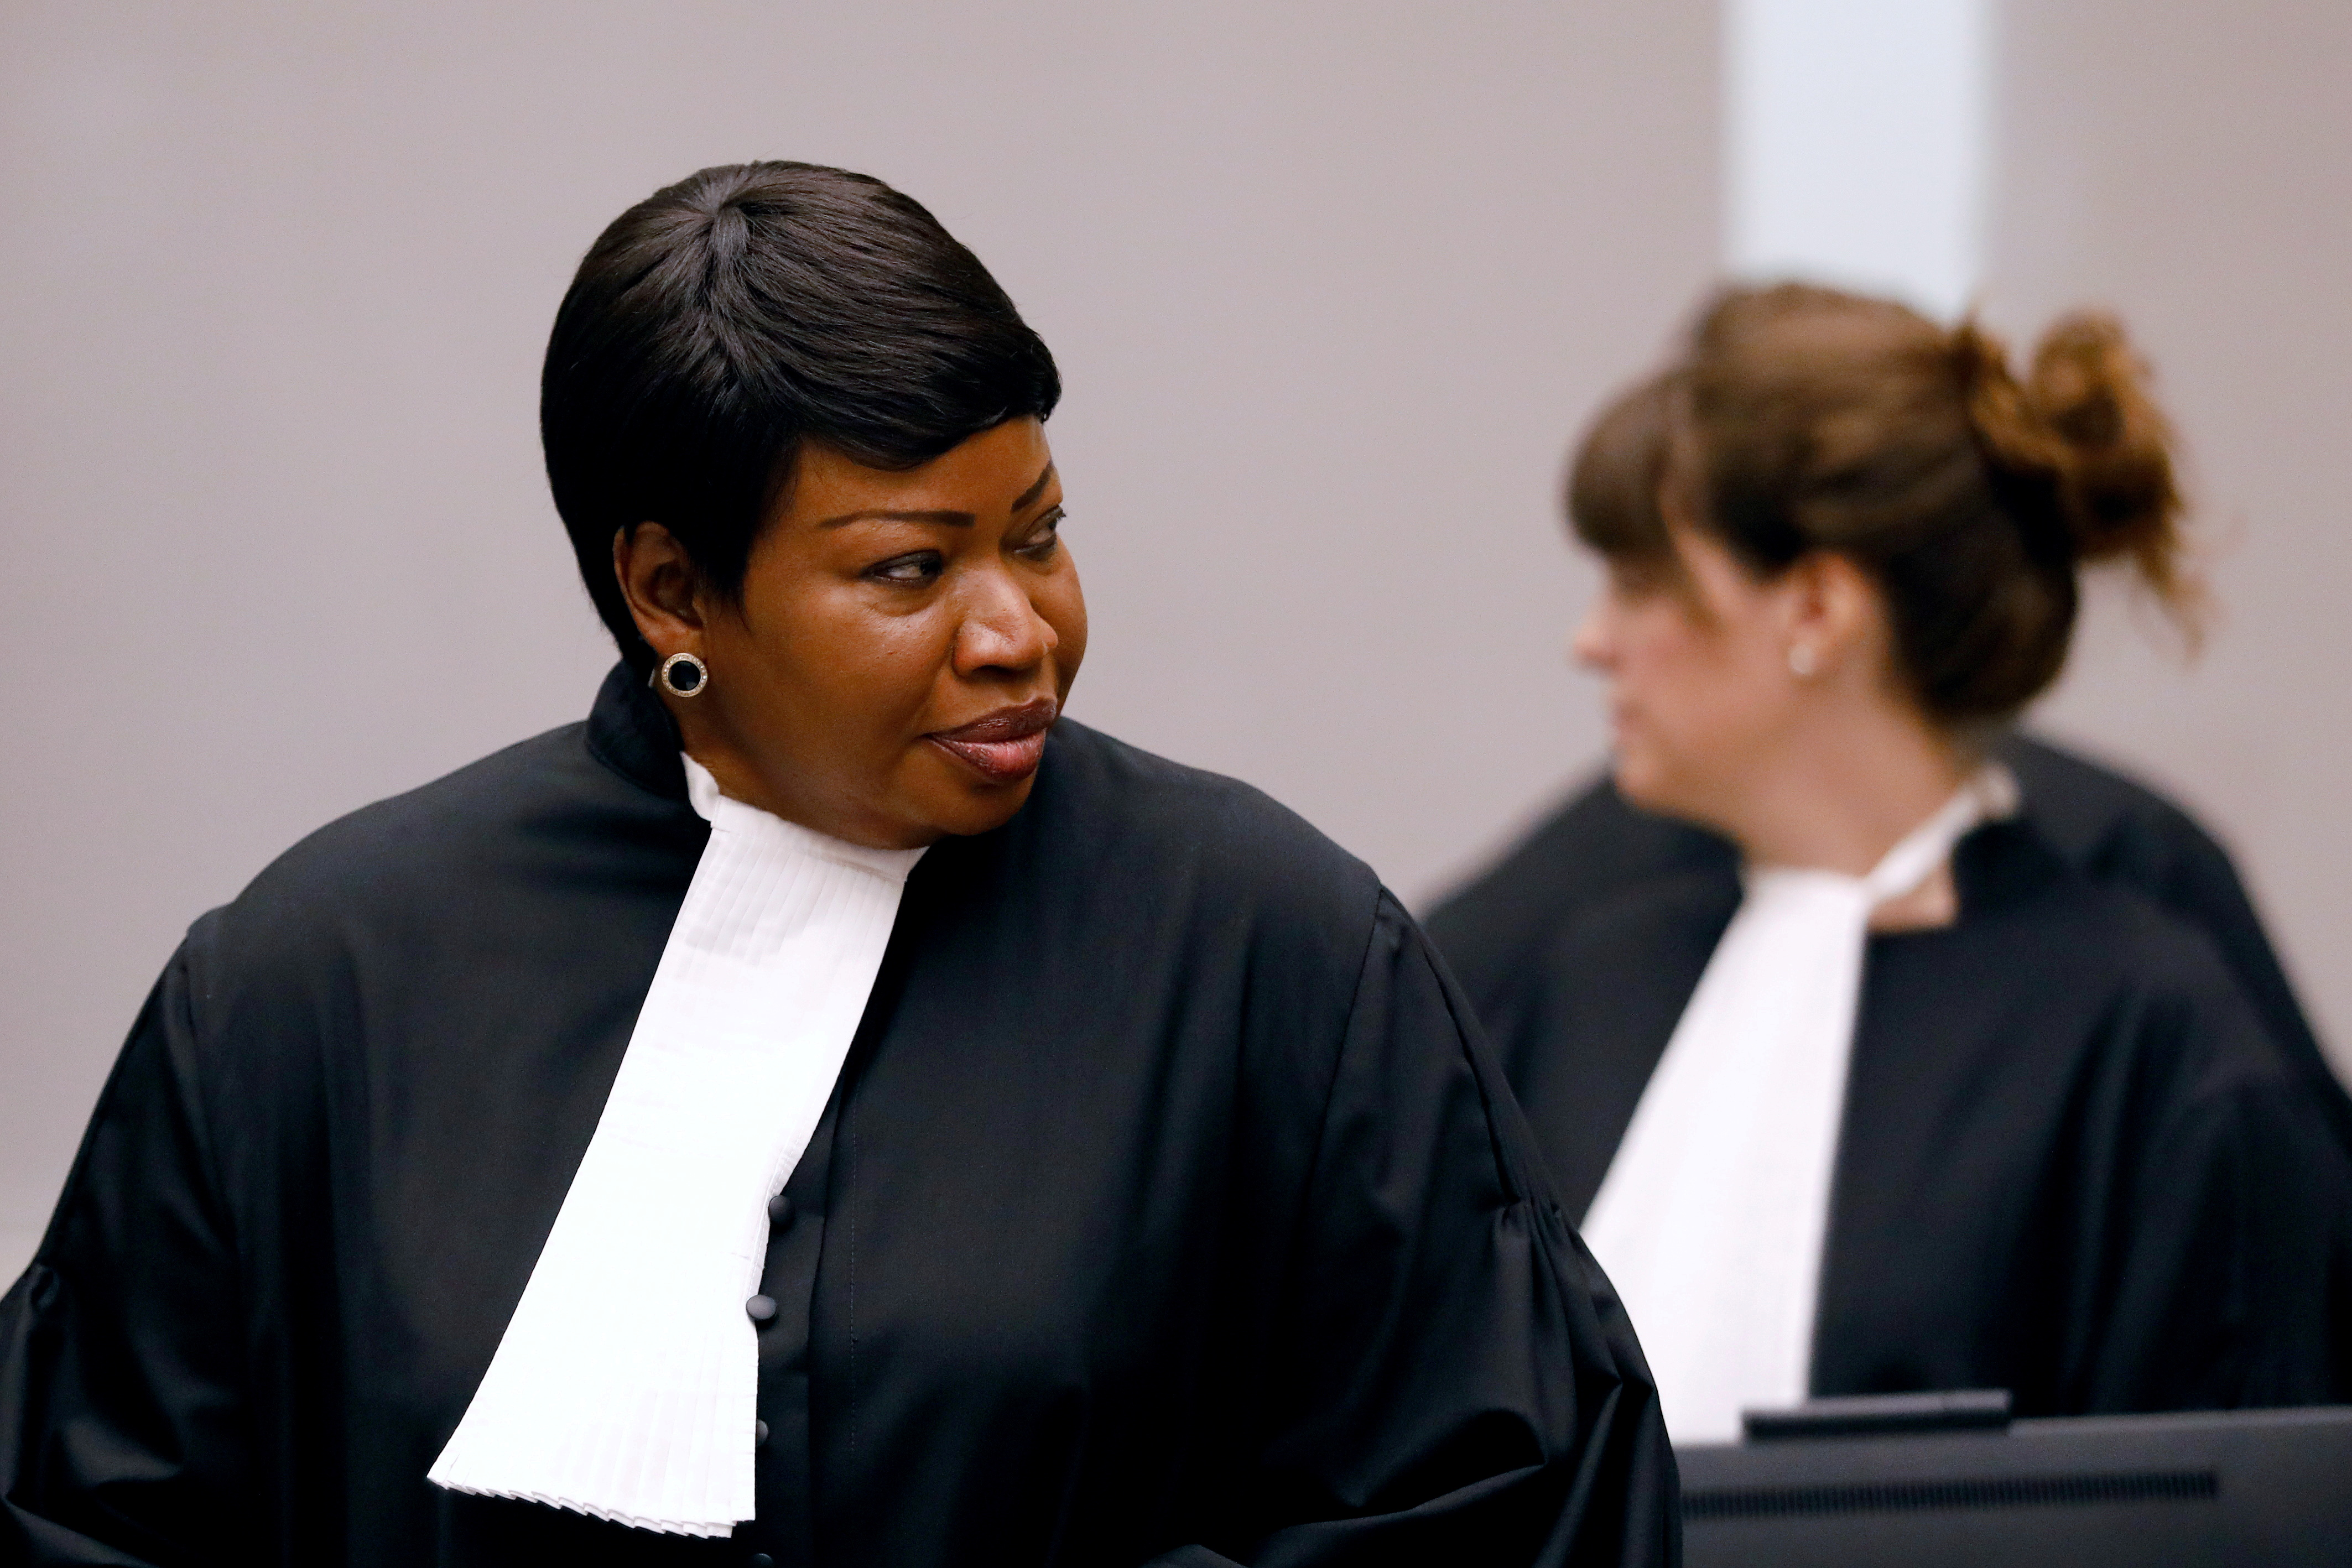 Public Prosecutor Fatou Bensouda attends the trial of Congolese warlord Bosco Ntaganda at the ICC (International Criminal Court) in the Hague, the Netherlands August 28, 2018. Bas Czerwinski/Pool via REUTERS